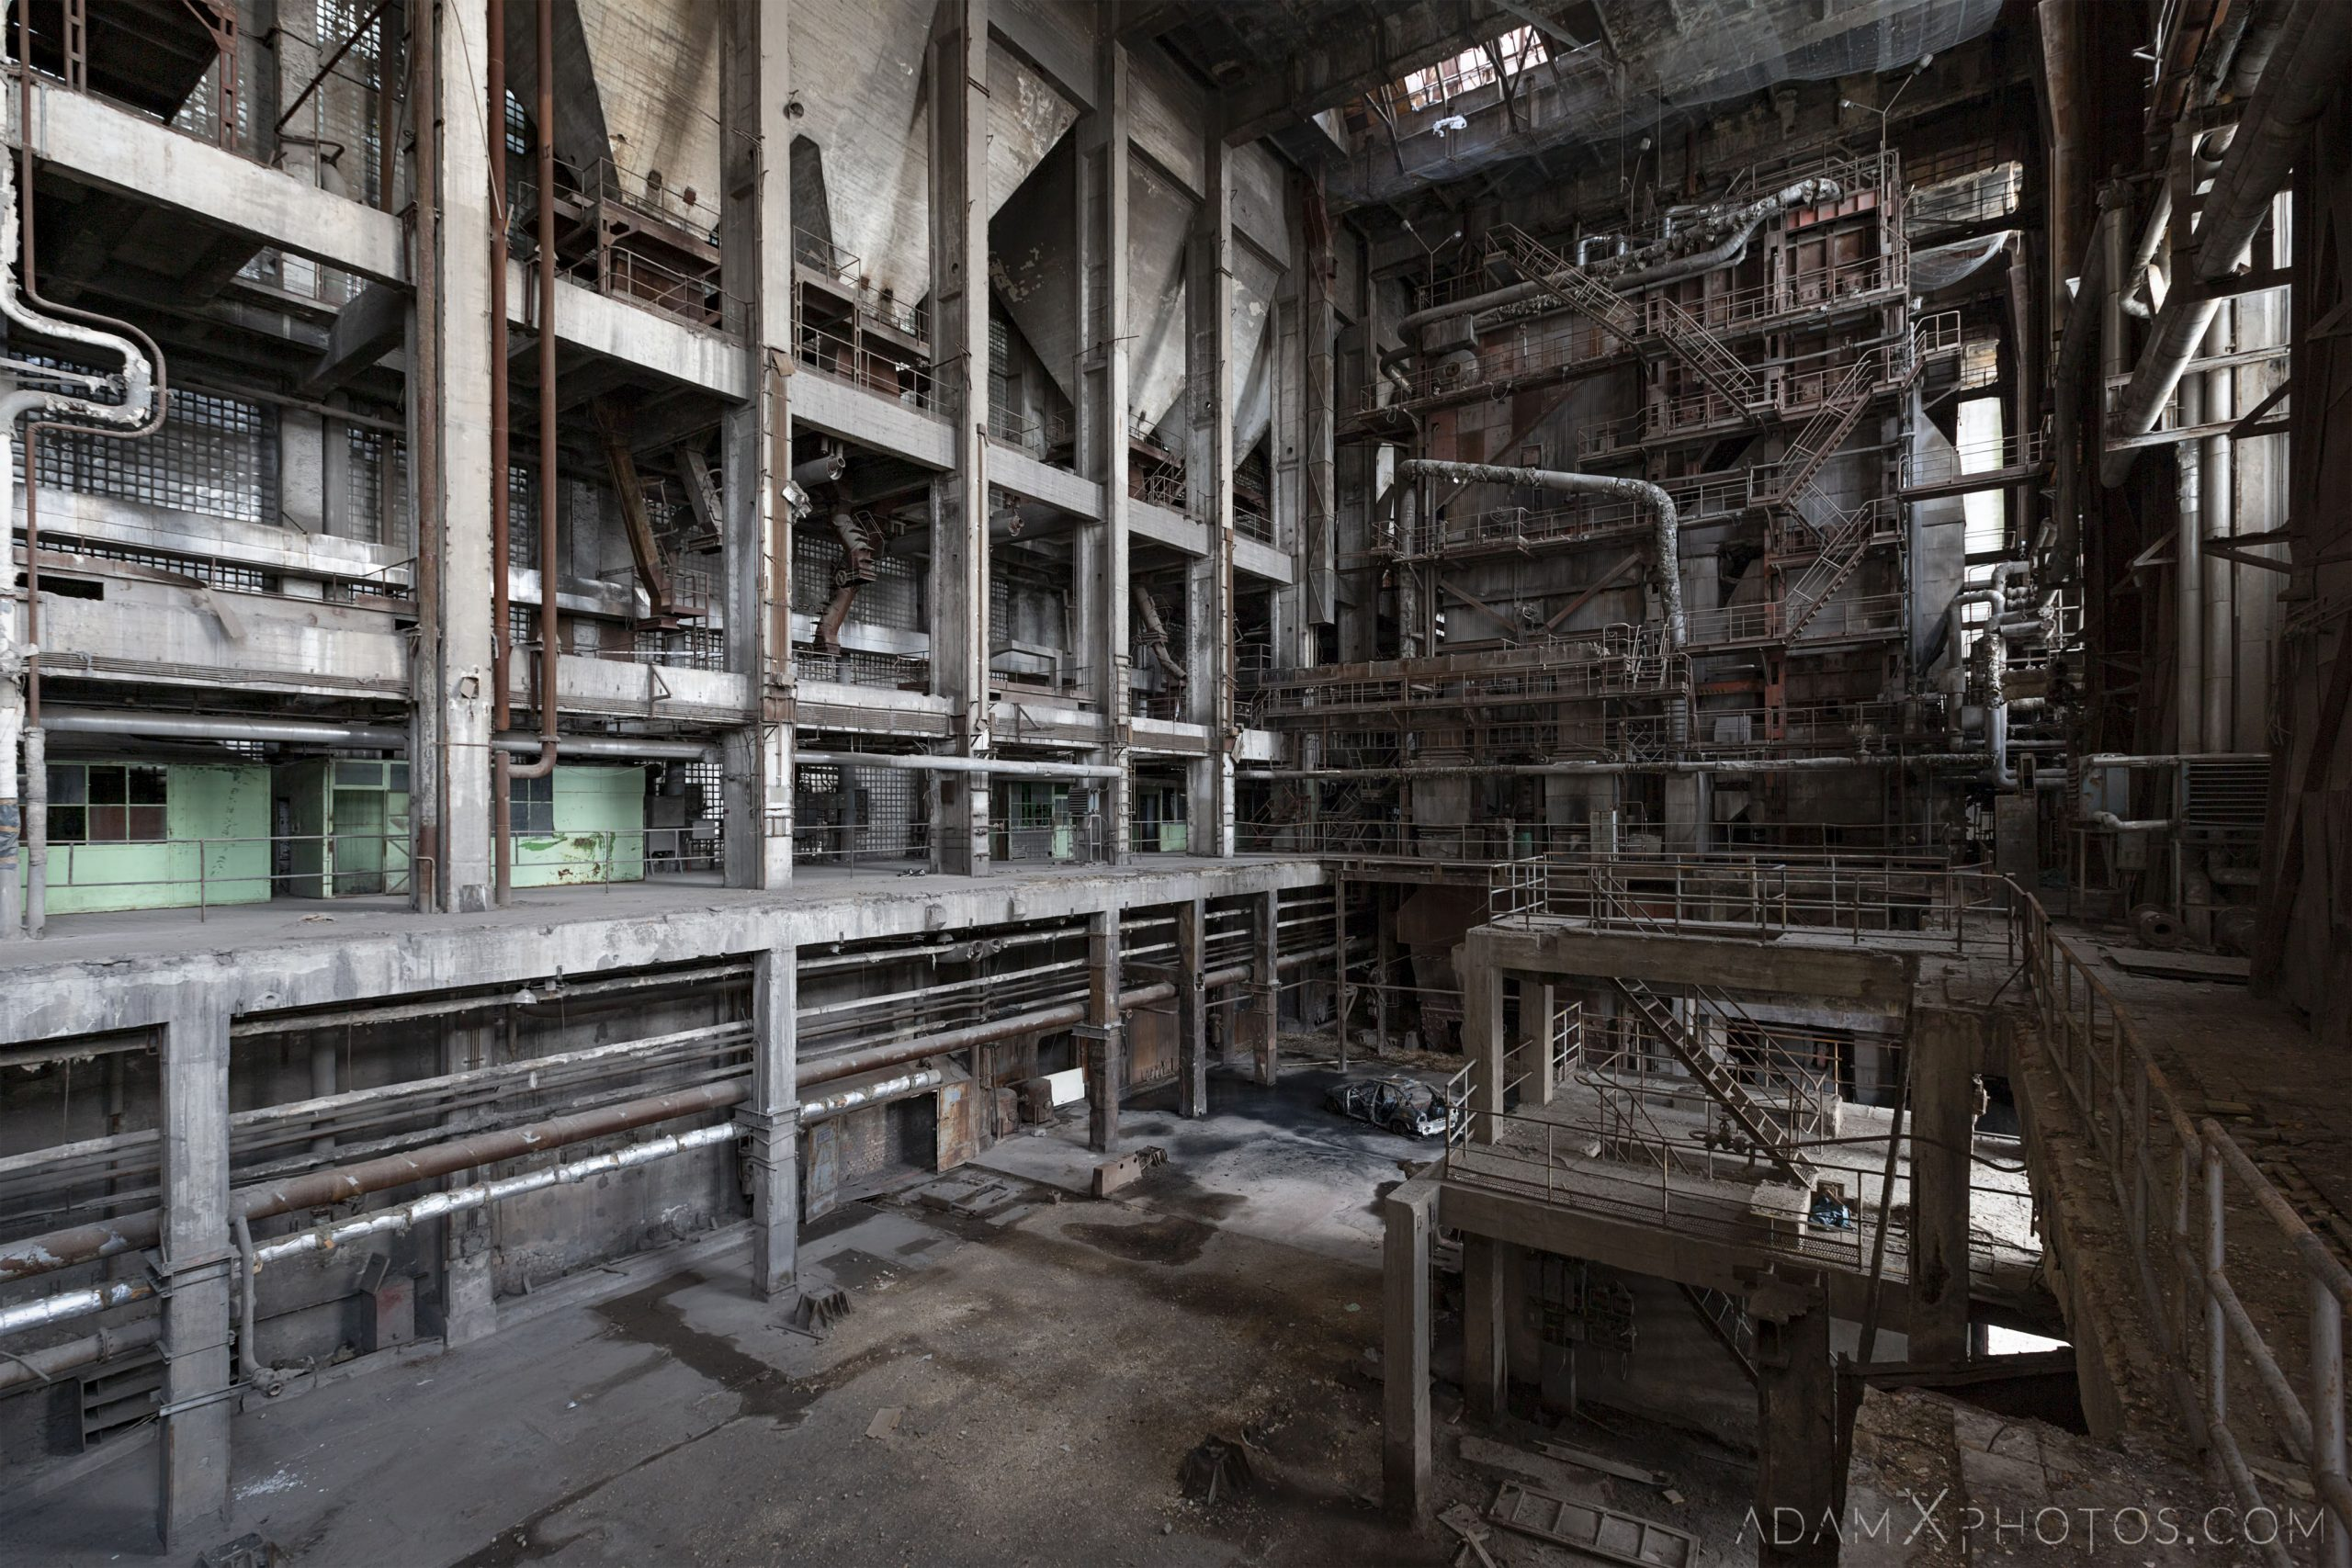 gantries pipes industry industrial rusty rusting Bladerunner Blade Runner 2049 Powerplant Inota Shephard's Power Plant Hungary Adam X Urbex Urban Exploration Access 2018 Abandoned decay ruins lost forgotten derelict location creepy haunting eerie security